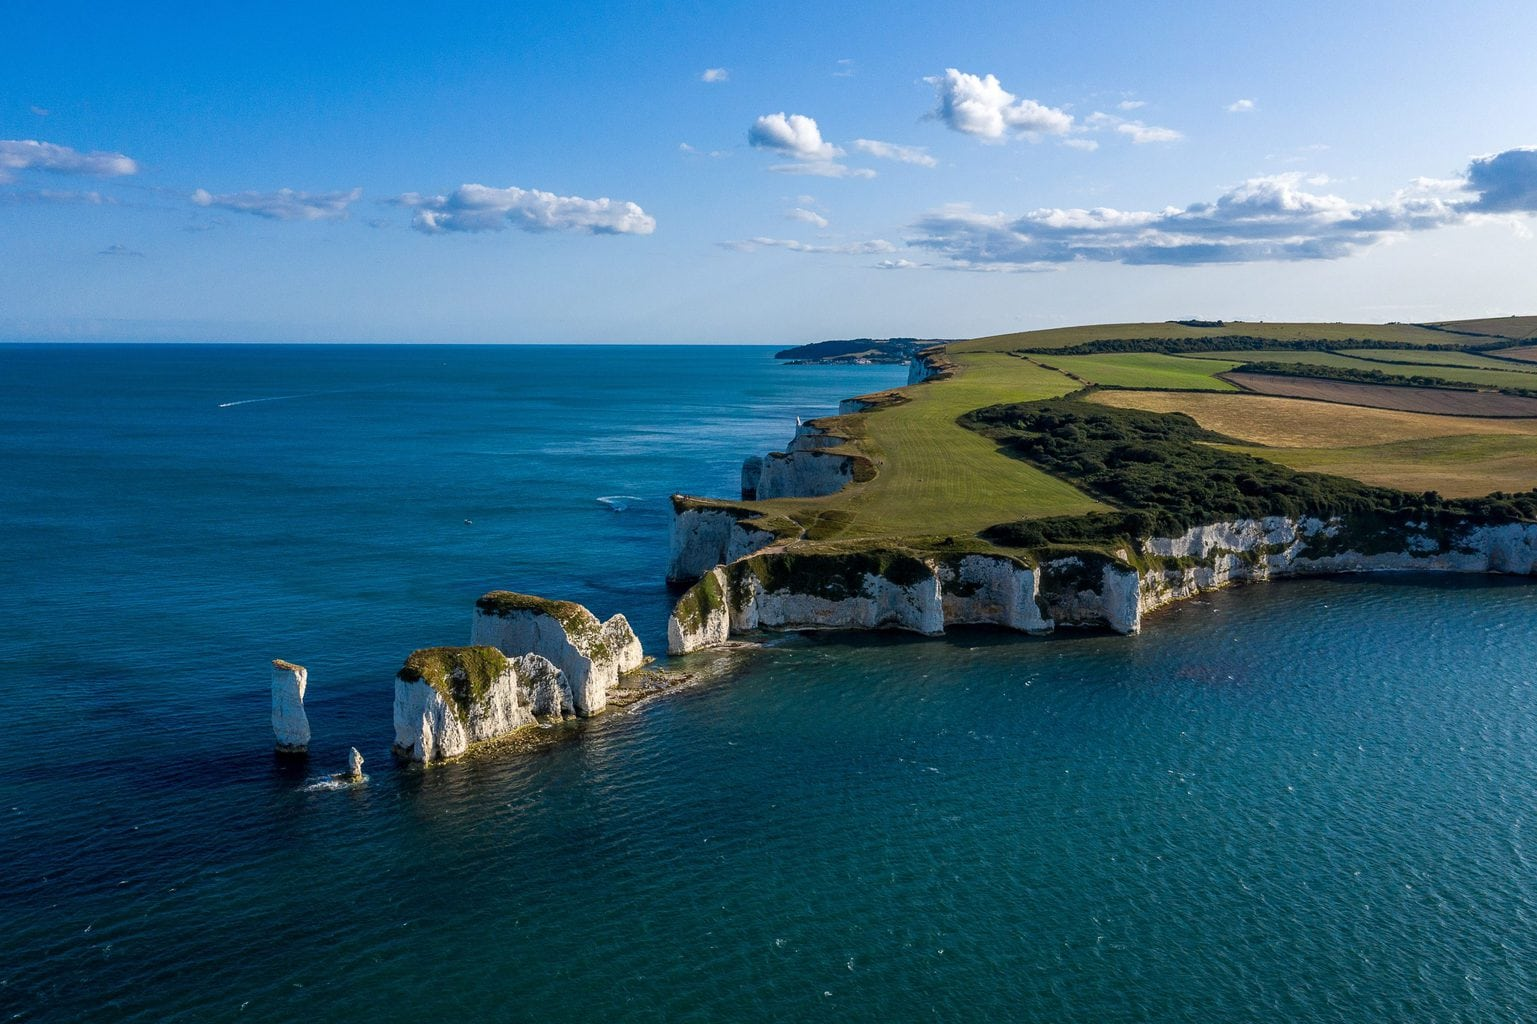 The Ultimate Isle of Purbeck Travel Guide